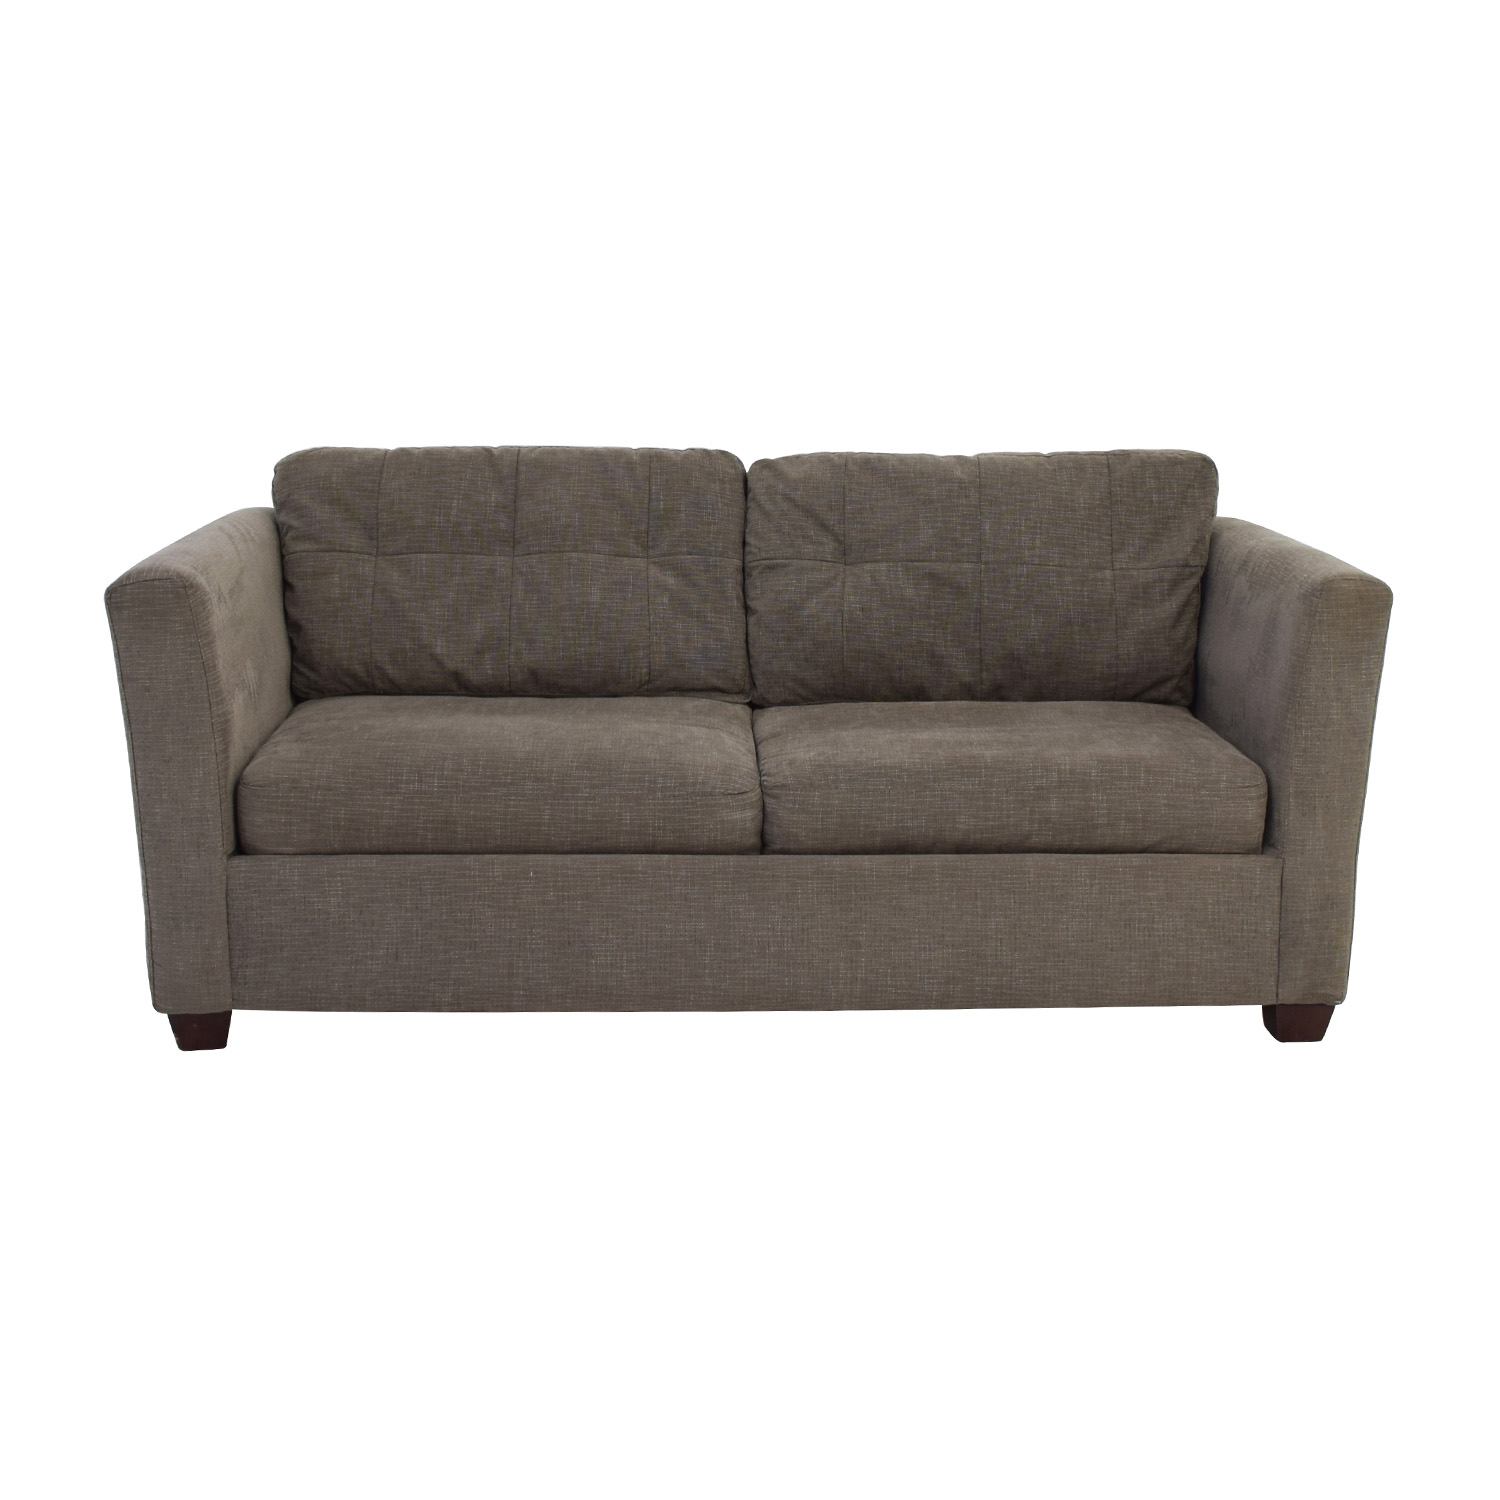 58 Off Bauhaus Bauhaus Grey Queen Sleeper Sofa Sofas